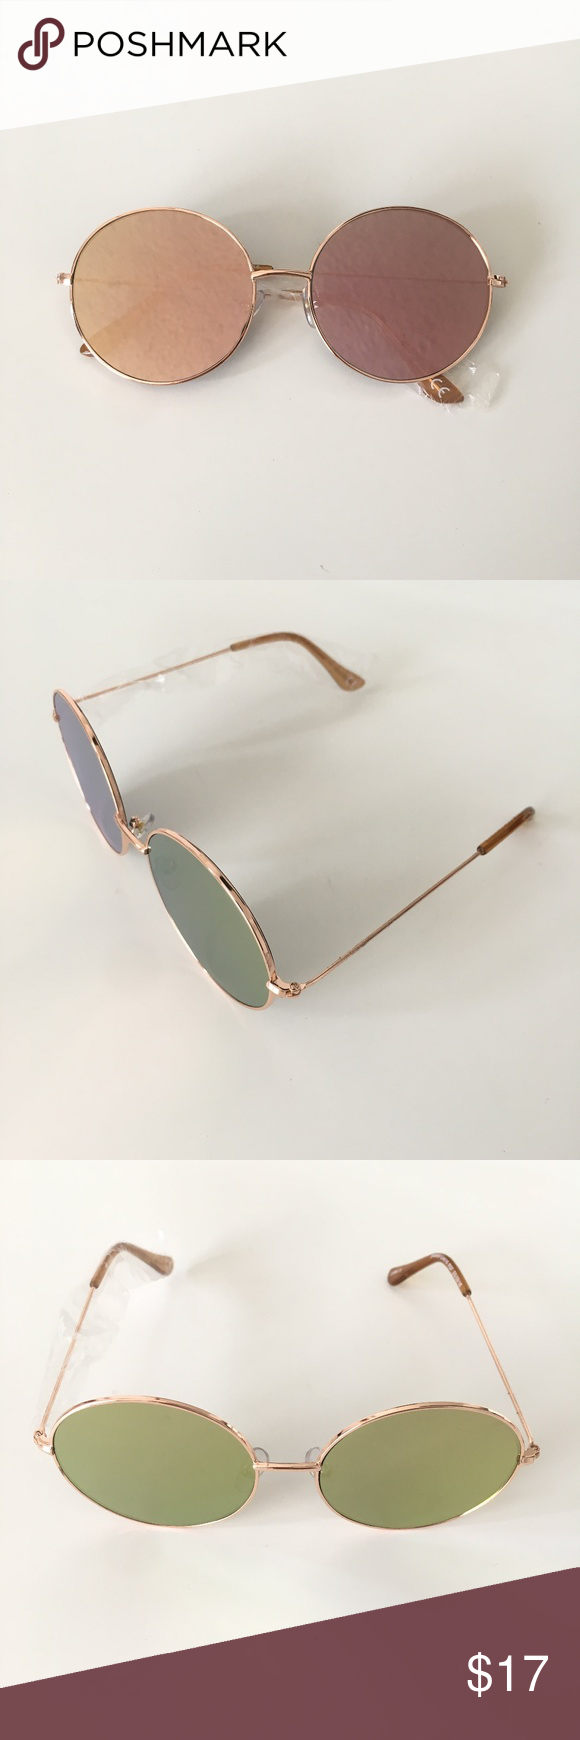 0e30ab84796e7 Pink Mirrored Sunglasses Super cute pink and gold mirrored flat lens round  sunglasses with rose gold